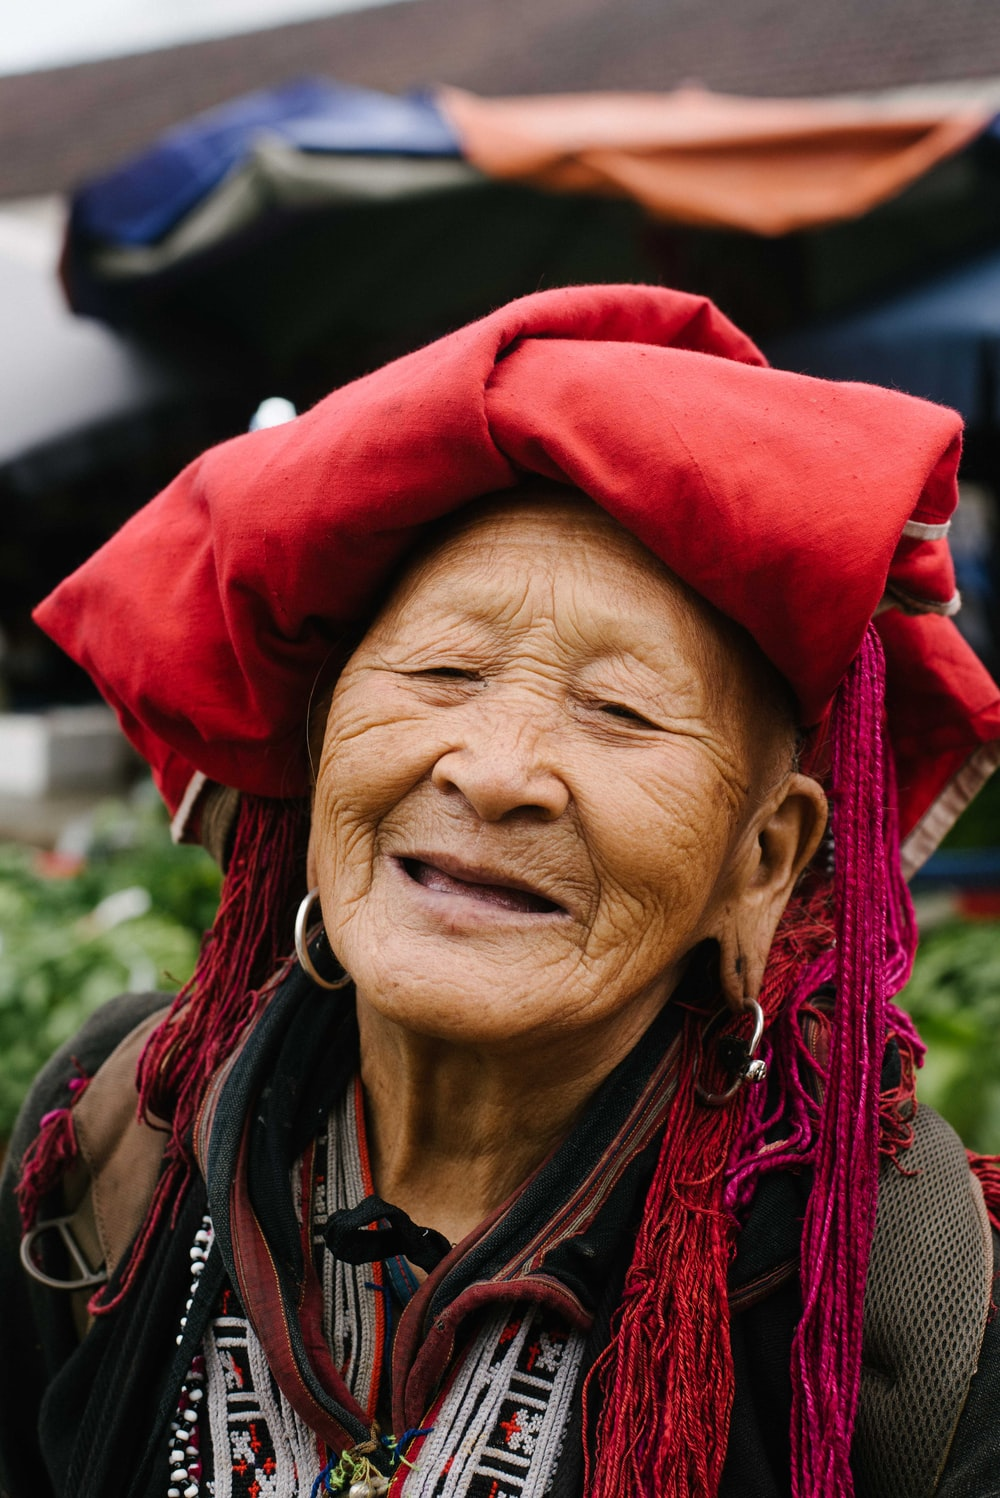 red textile on woman's head